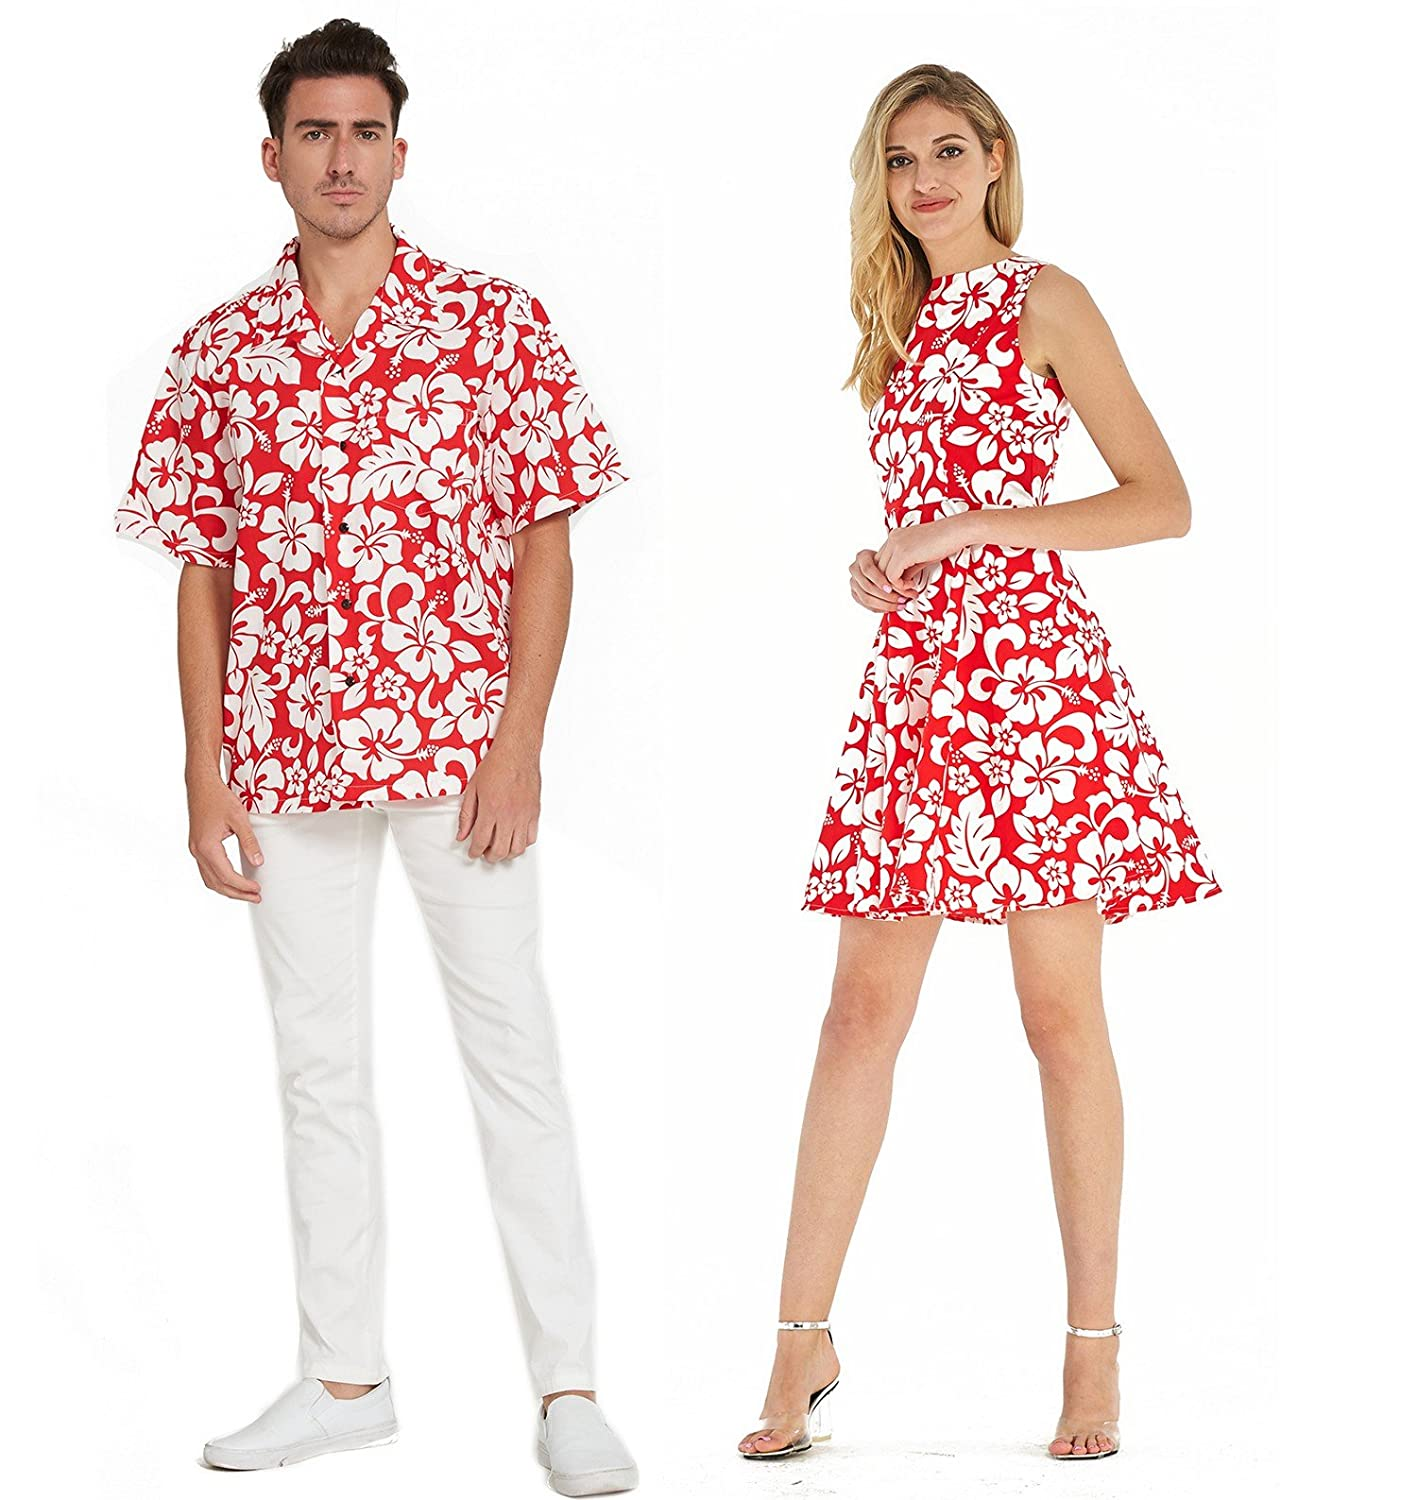 277dd1149b31 Hawaii Hangover - Miss Hawaii Already? Keep Hangover going! Exact Matching  Outfit, Quality Made. Price includes one men shirt and one women Vintage  Dress.